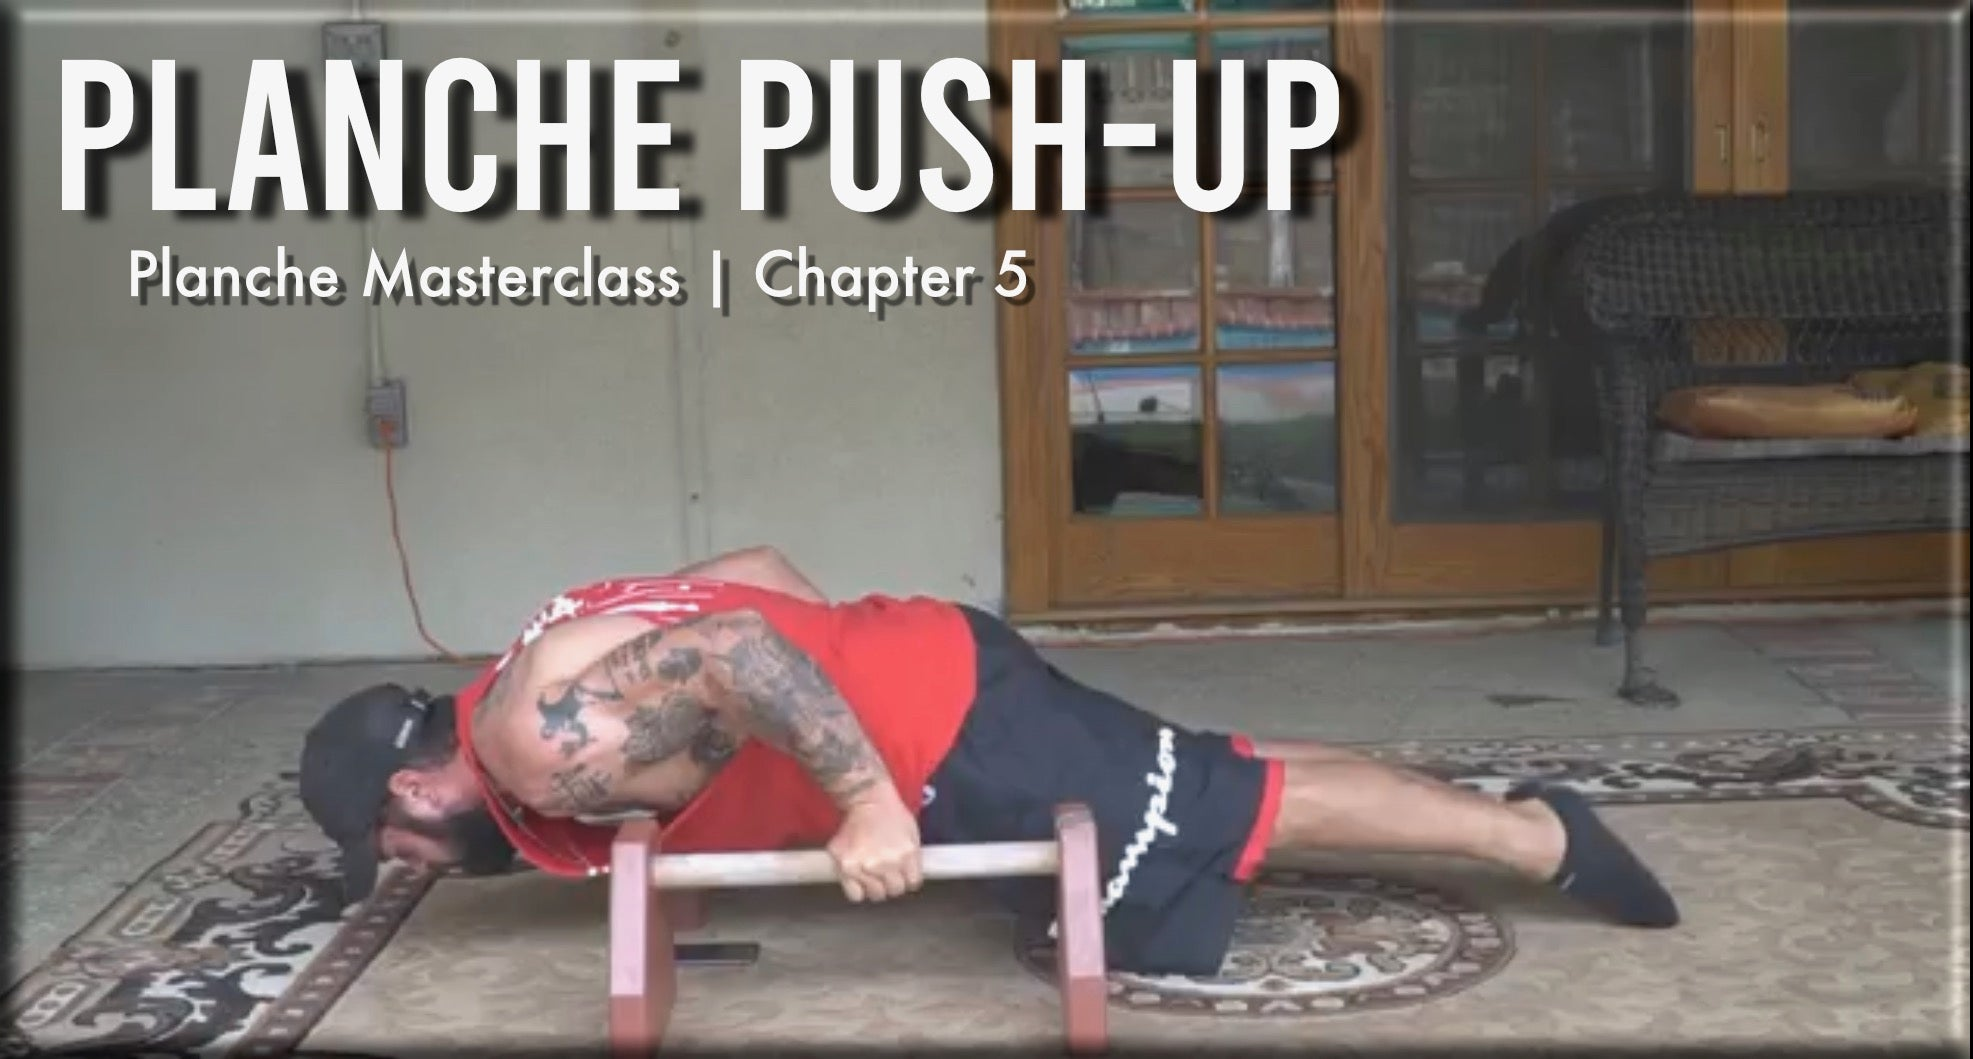 Planche Masterclass Chapter 5